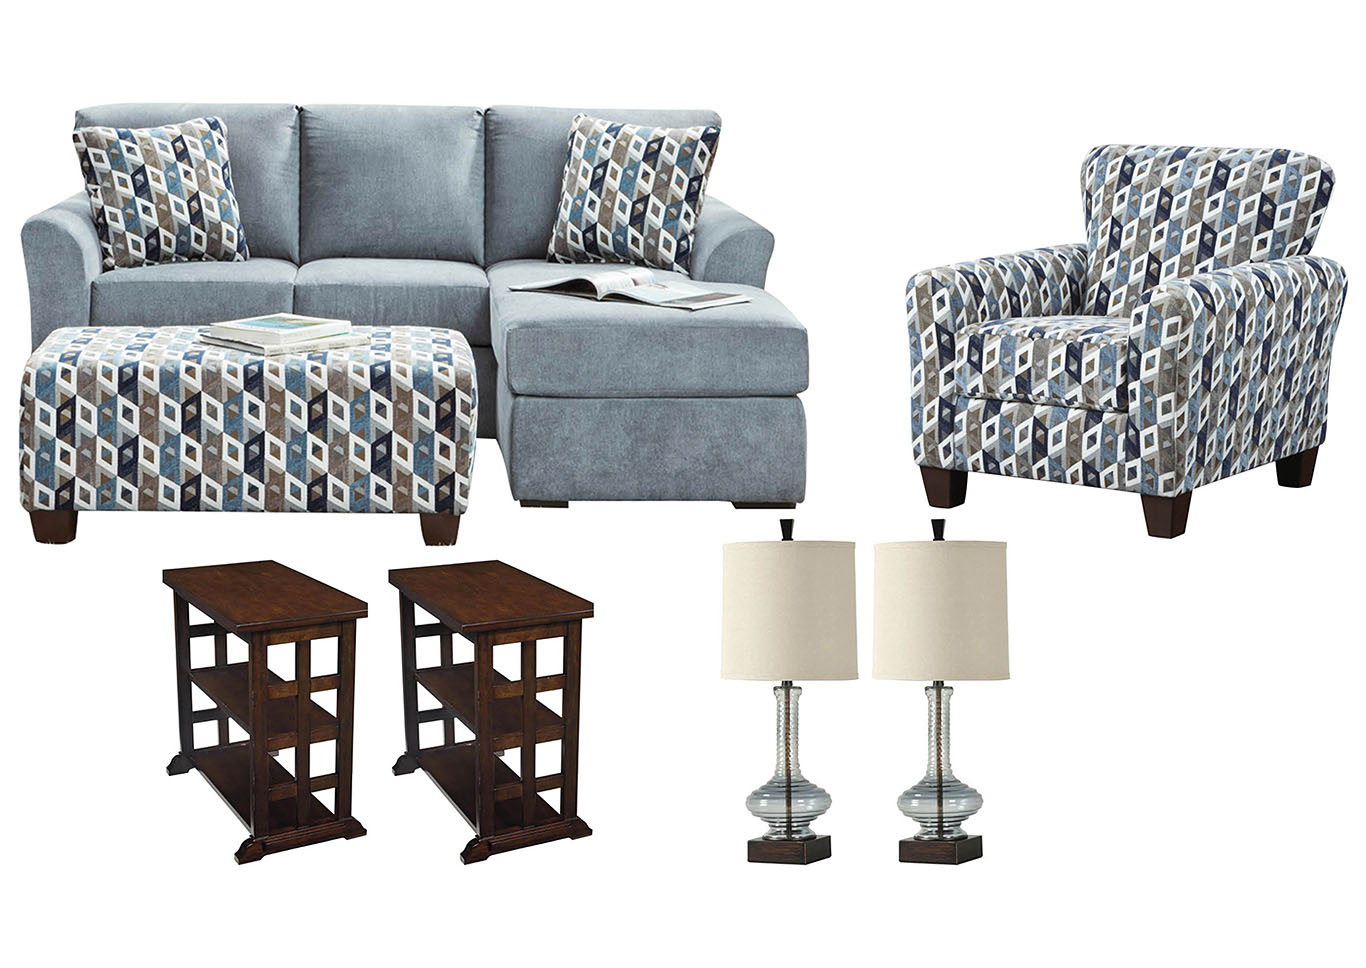 ANNA BLUE LIVING ROOM SET,AFFORDABLE FURNITURE